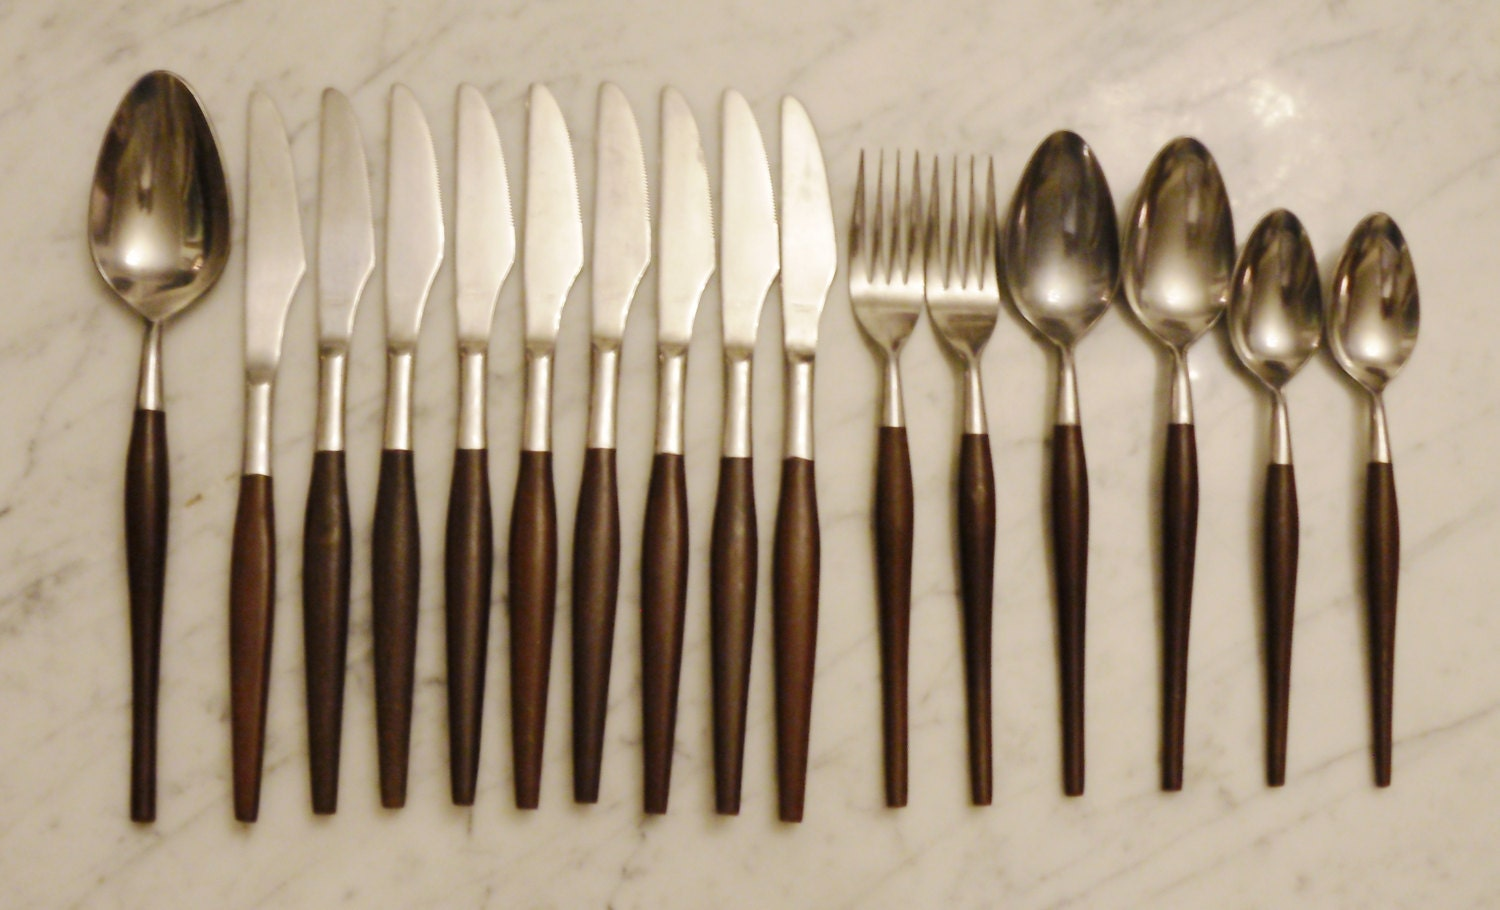 16pc Vintage Japan Stainless Faux Wood Rounded Handle